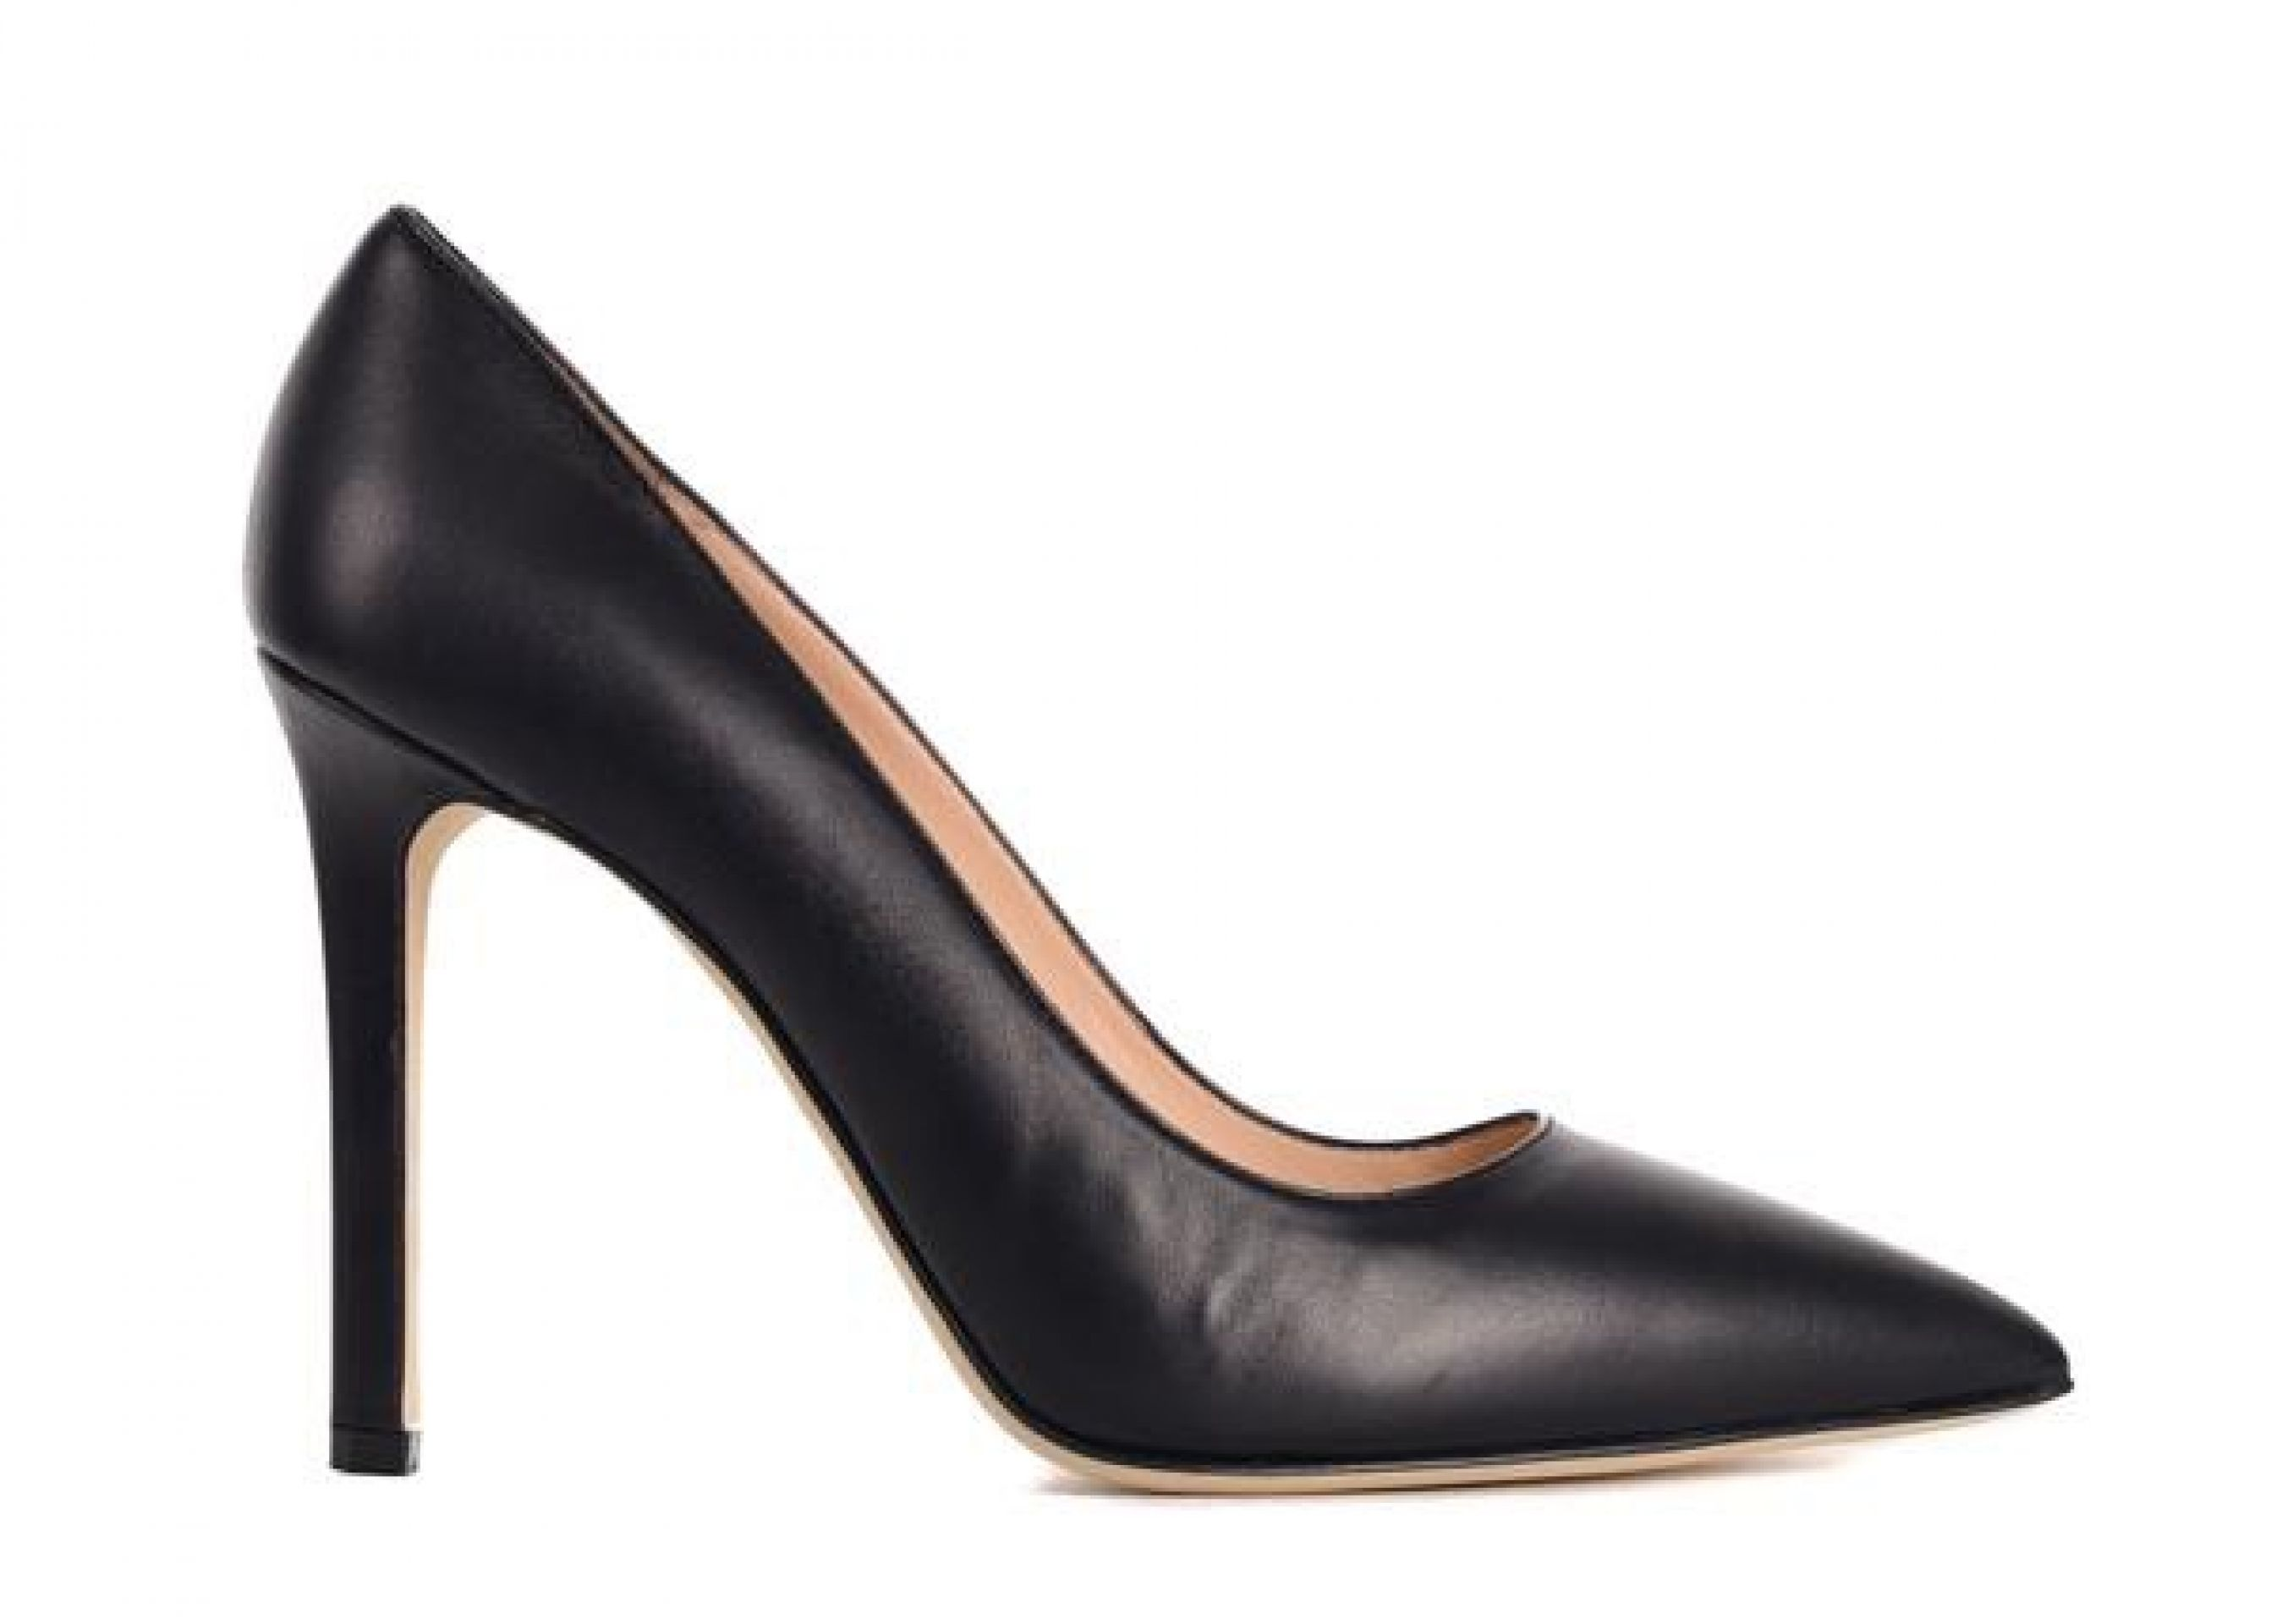 MANOLO BLAHNIK WOMENS BB BLACK LEATHER POINTED TOE PUMPS